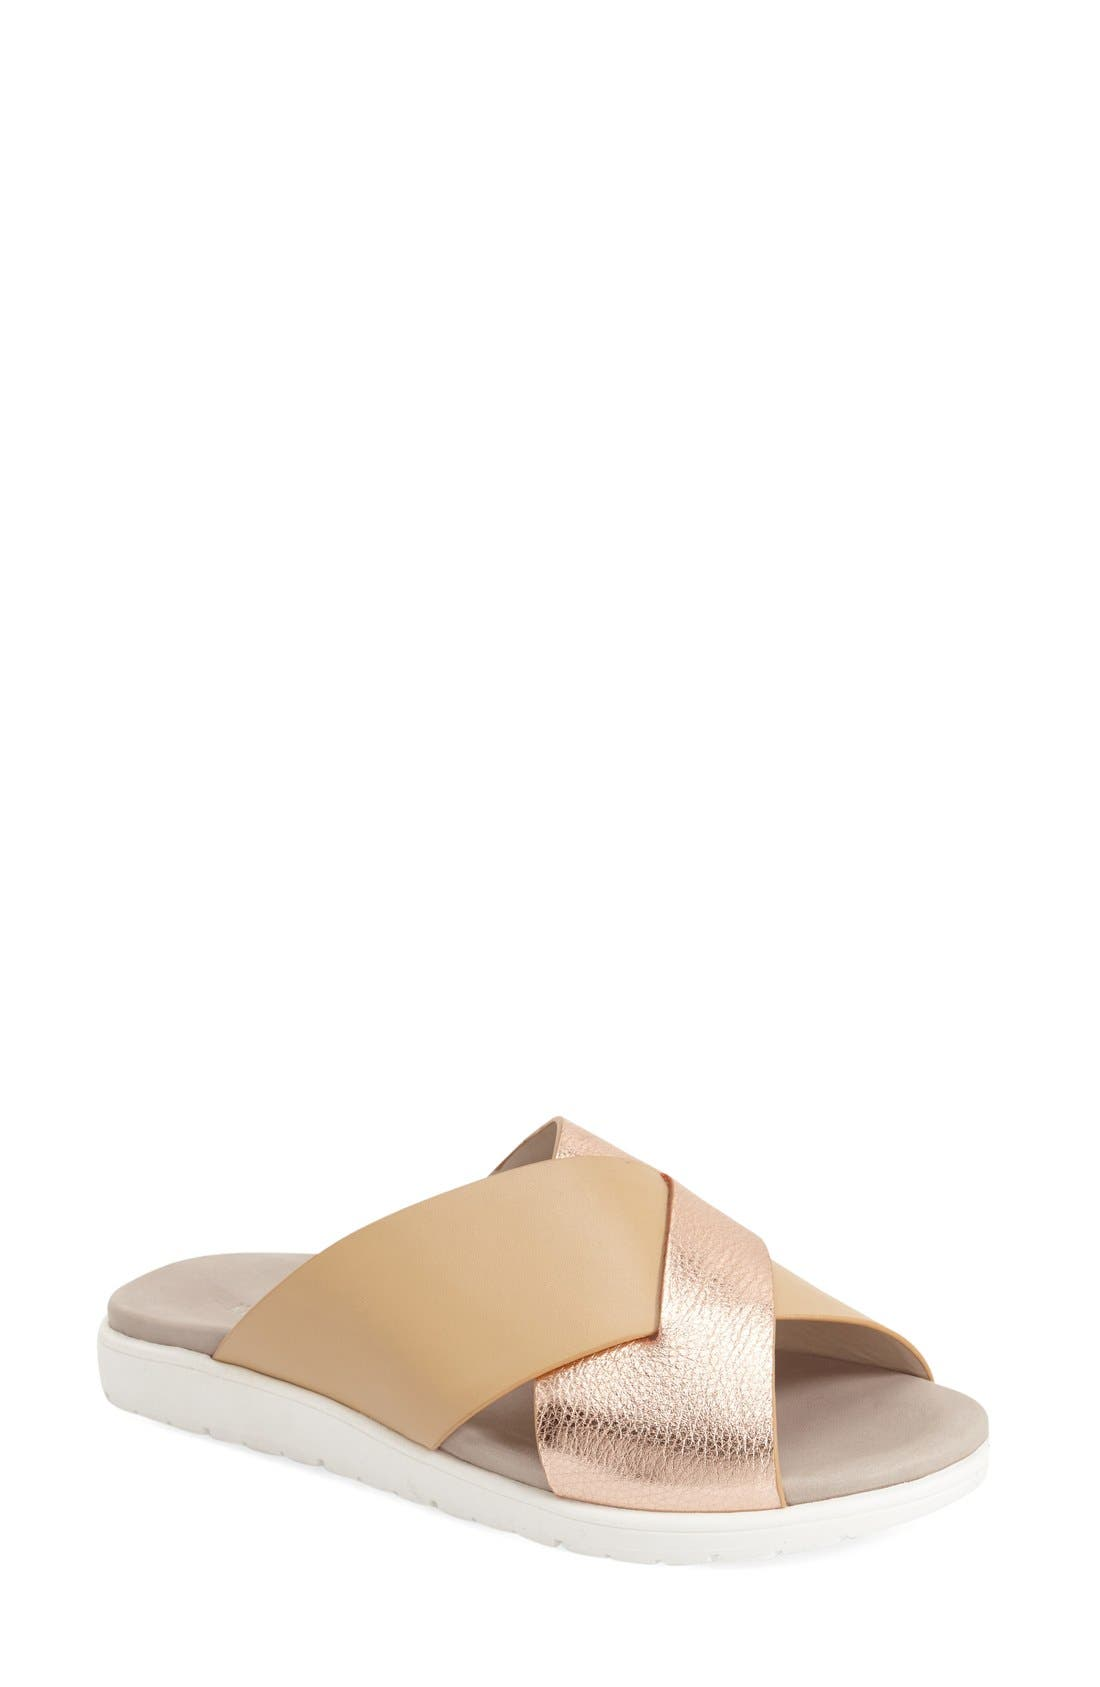 'Maxwell' Sandal,                             Main thumbnail 1, color,                             Rose Gold/ Nude Leather